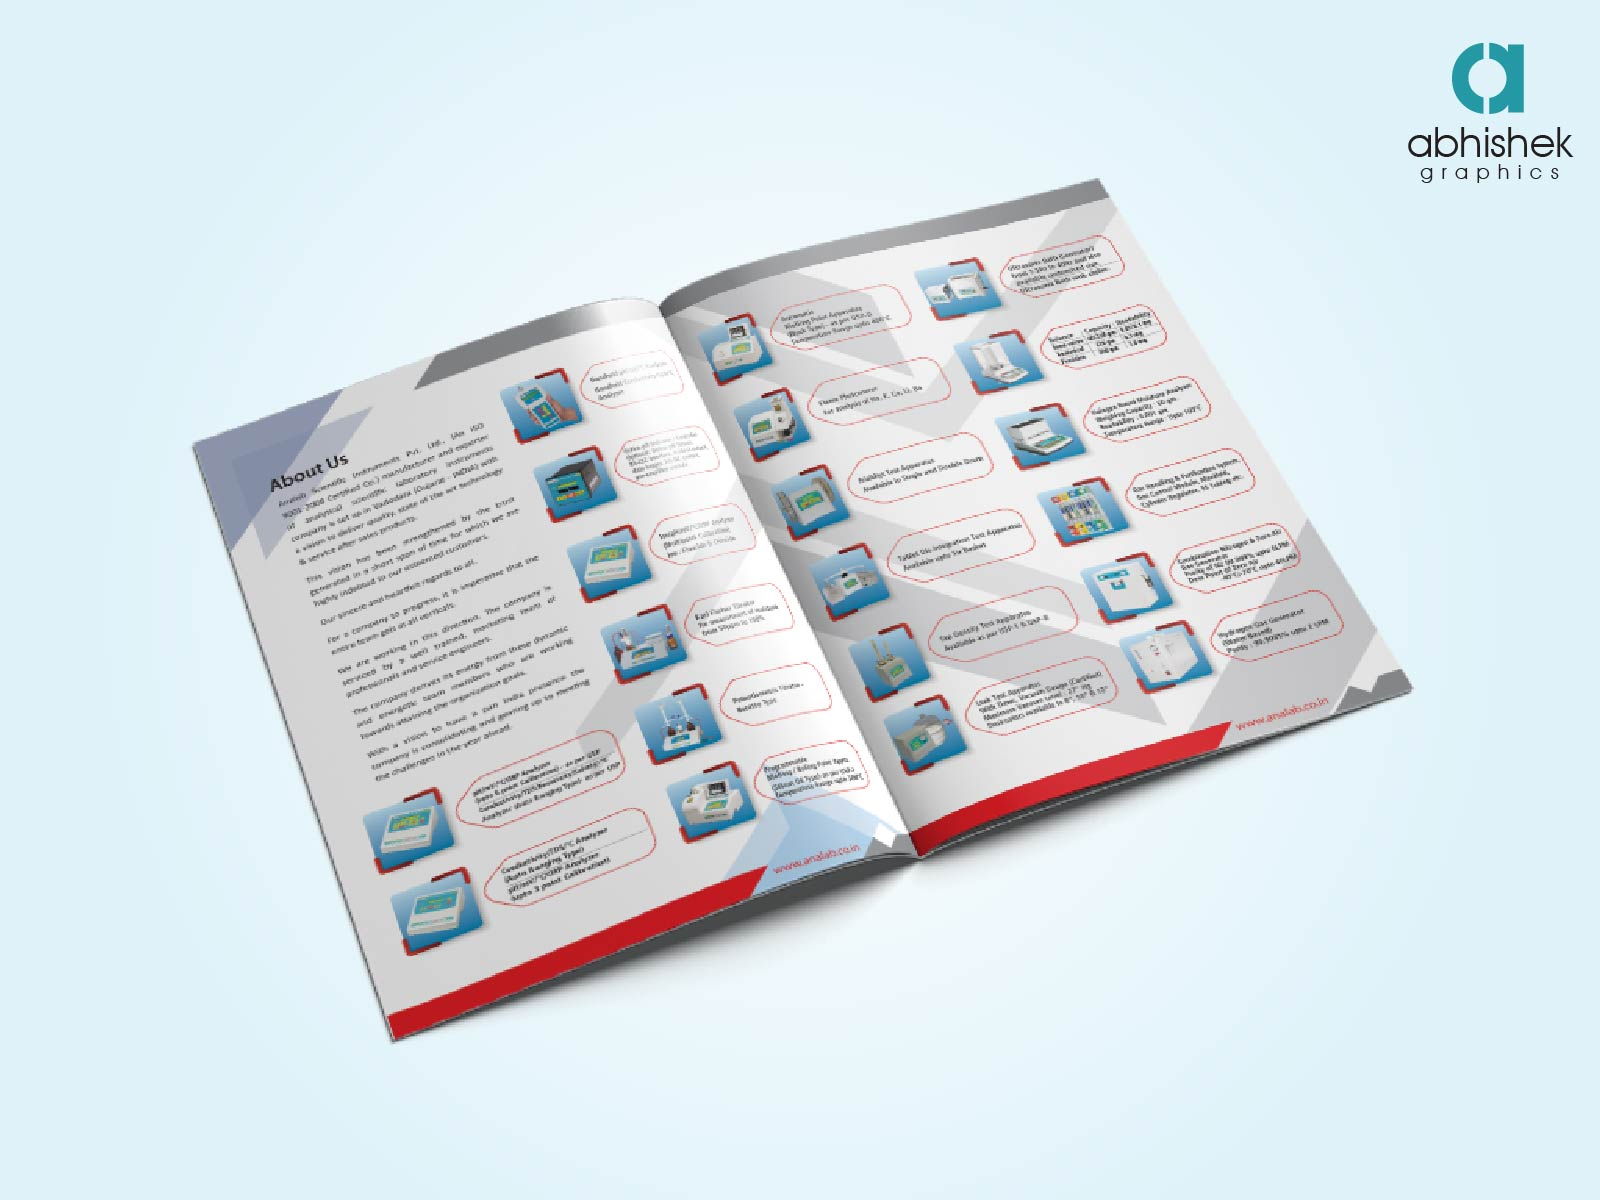 Creative brochure design agency in india abhishek graphics for Product design companies